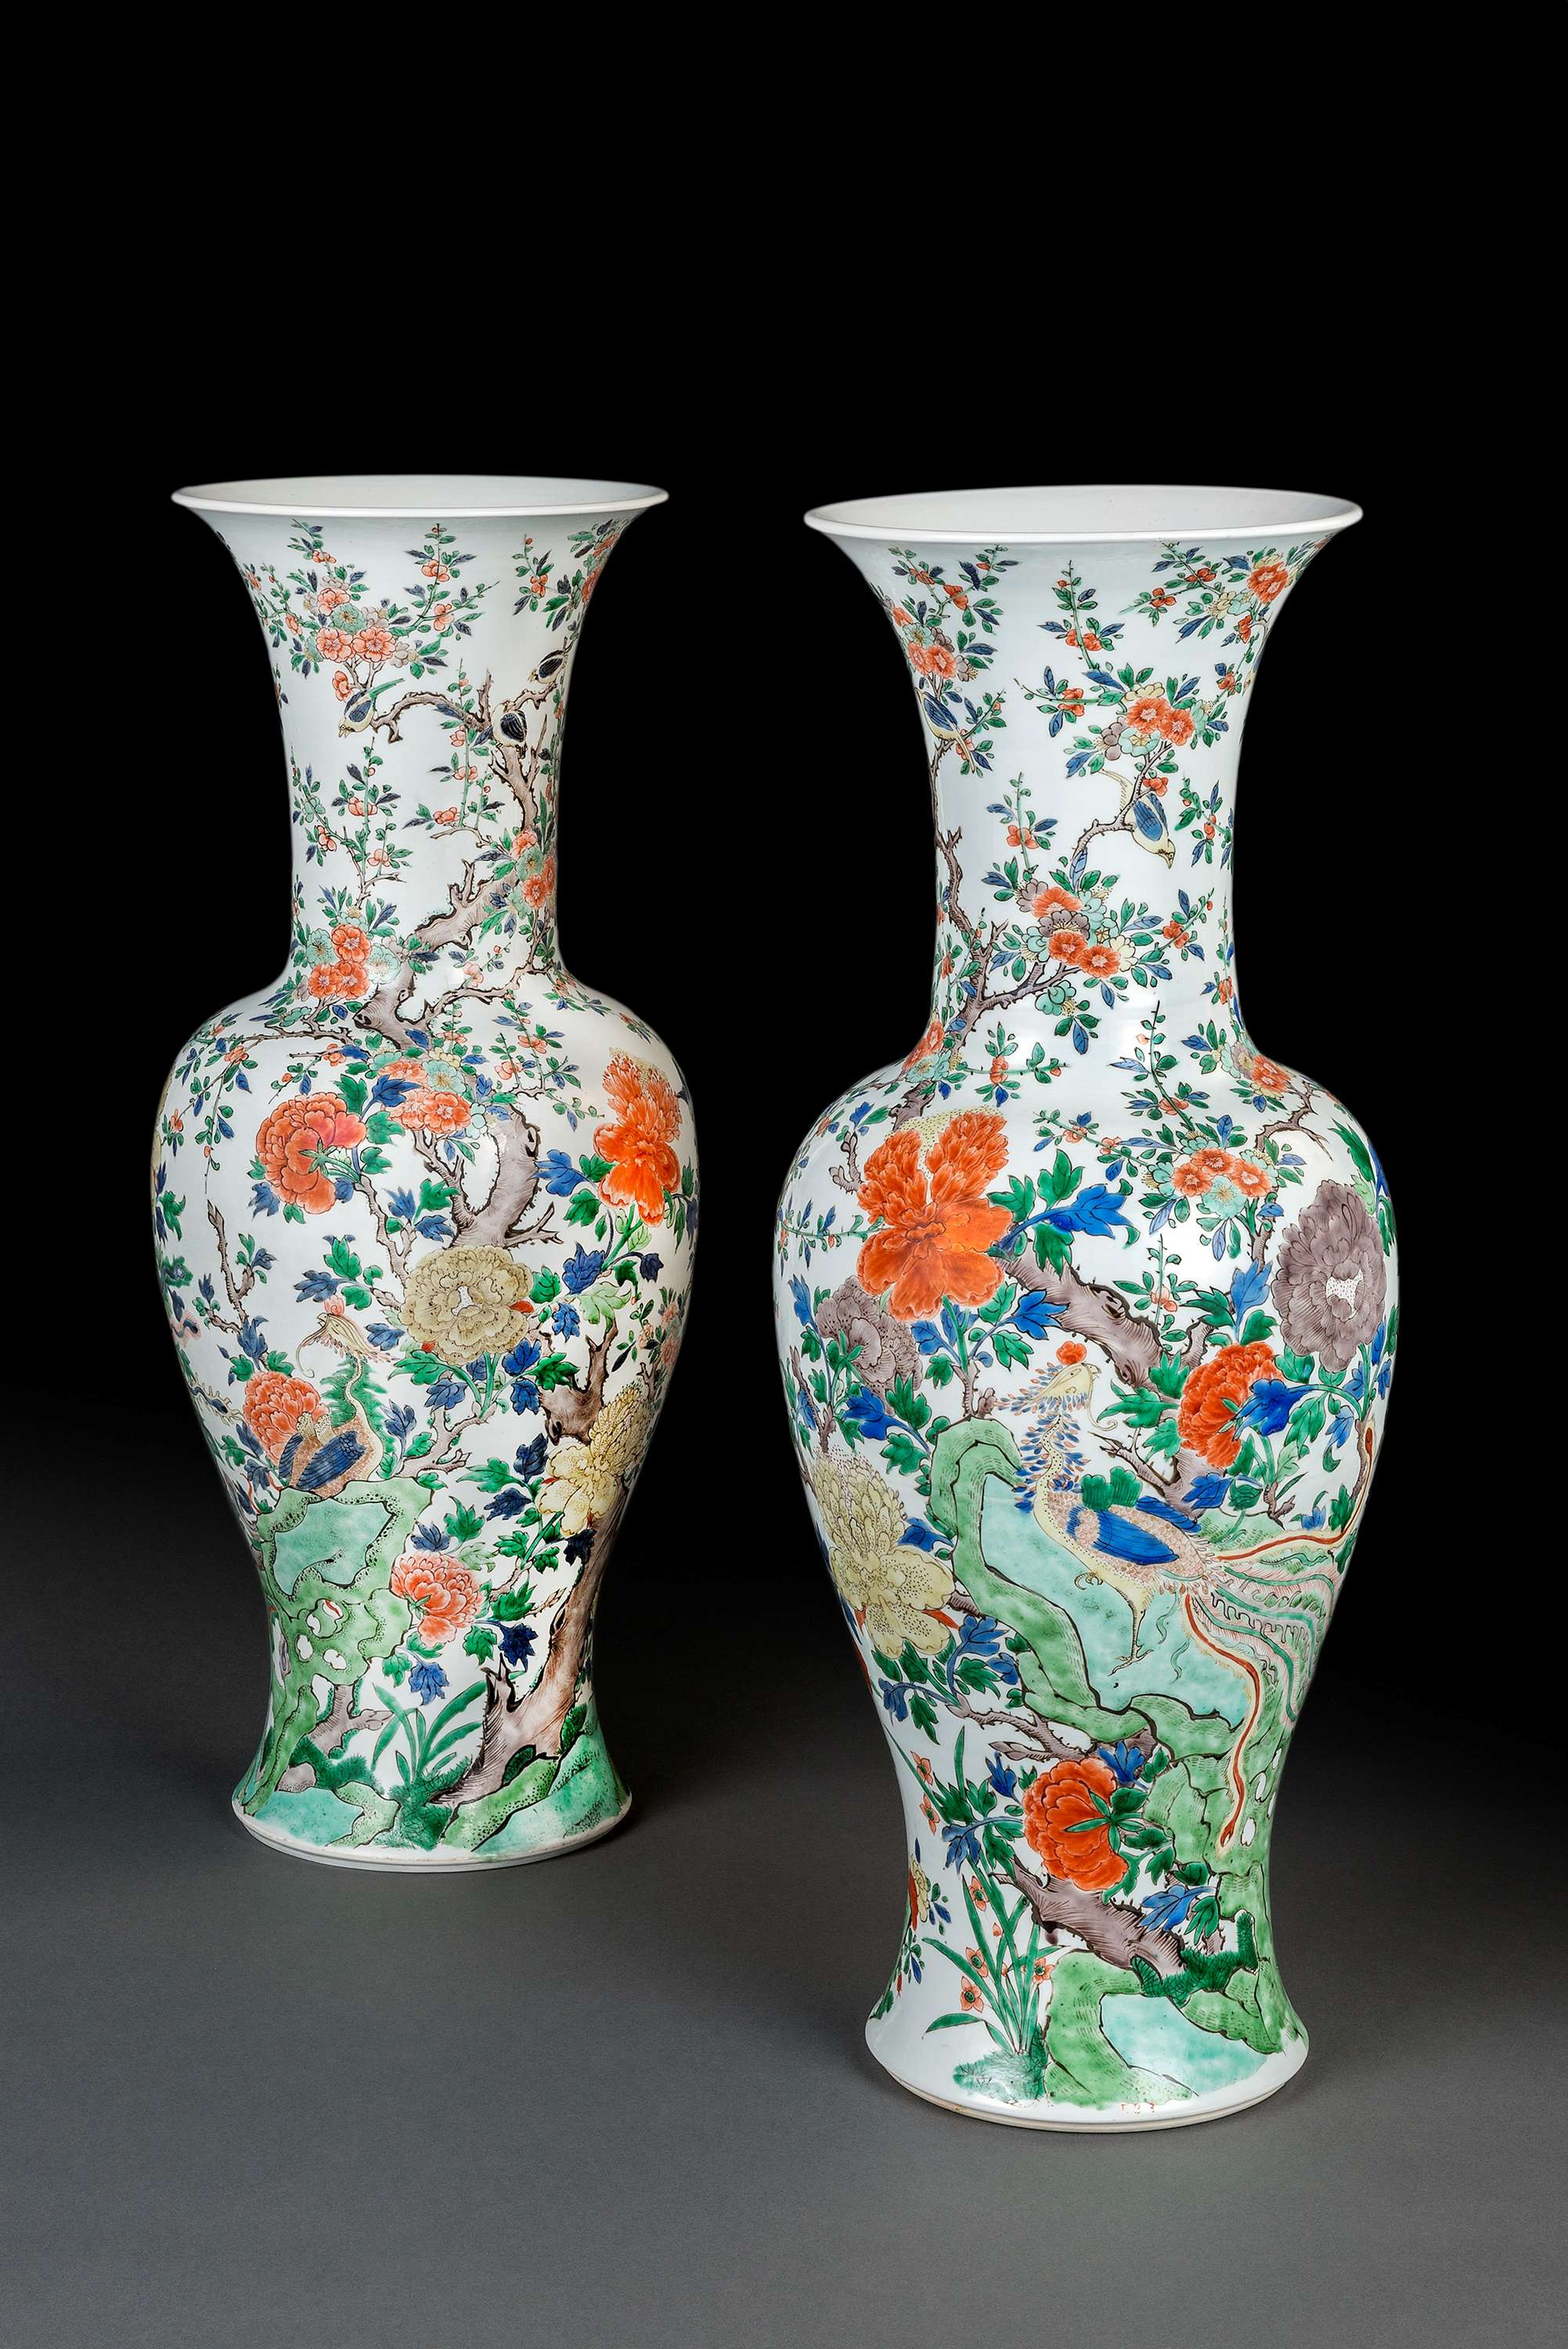 Kangxi period alainruong two famille verte phoenix tail vases china kangxi period 1662 1722 luis alegria stand 167 tefaf 2015 antiques 13 22 march 2015 reviewsmspy